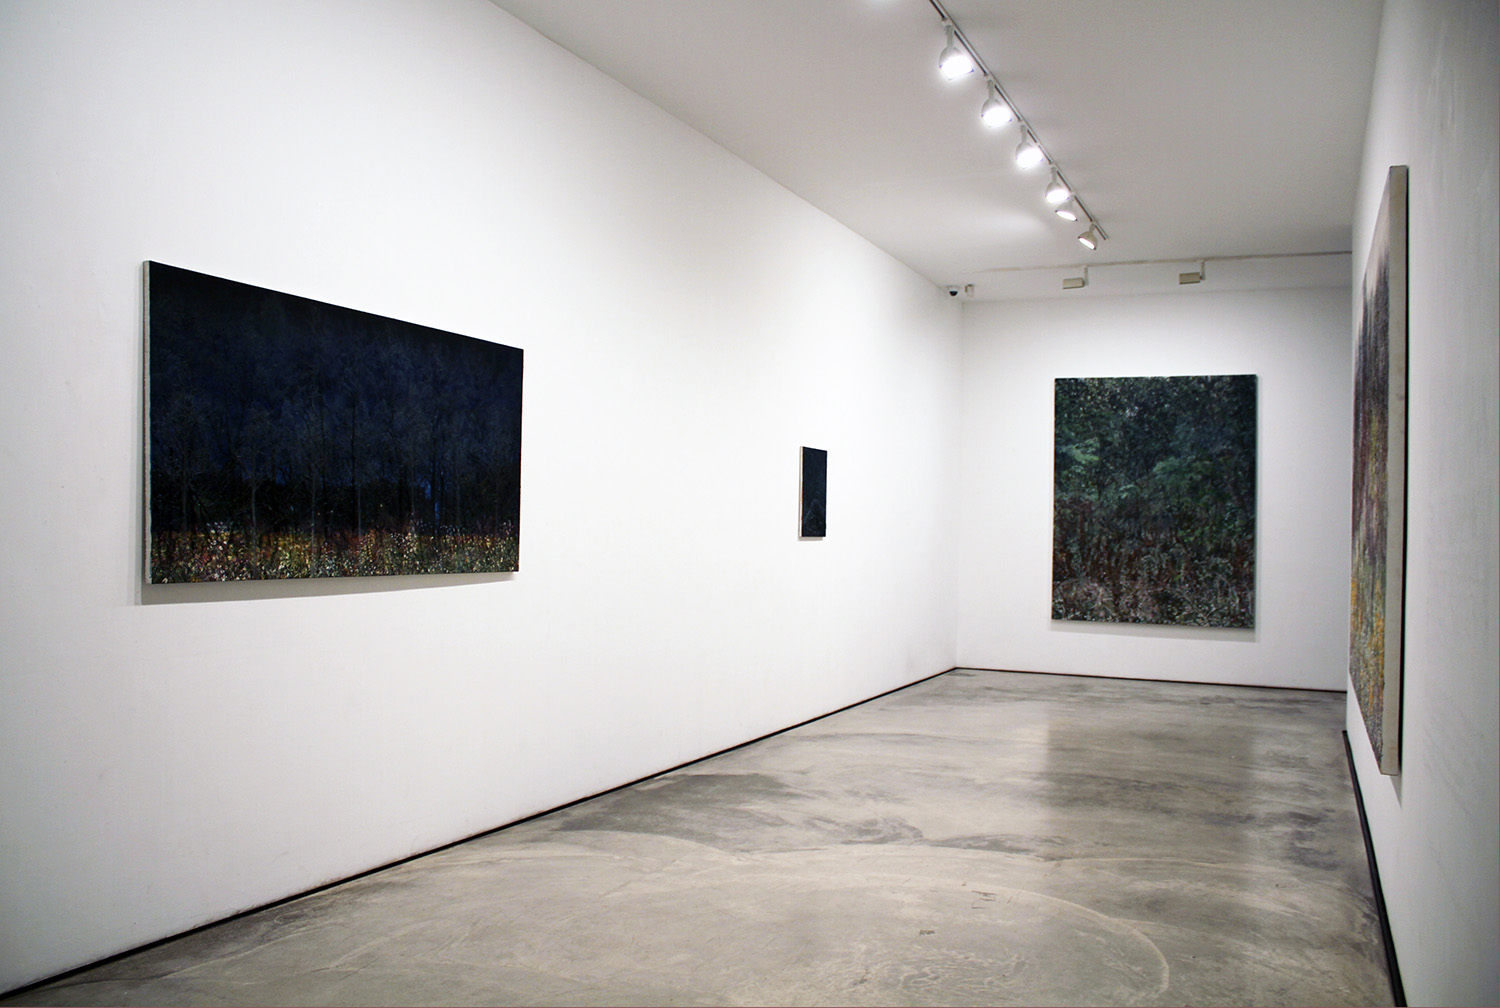 HEO Suyoung_Installation view